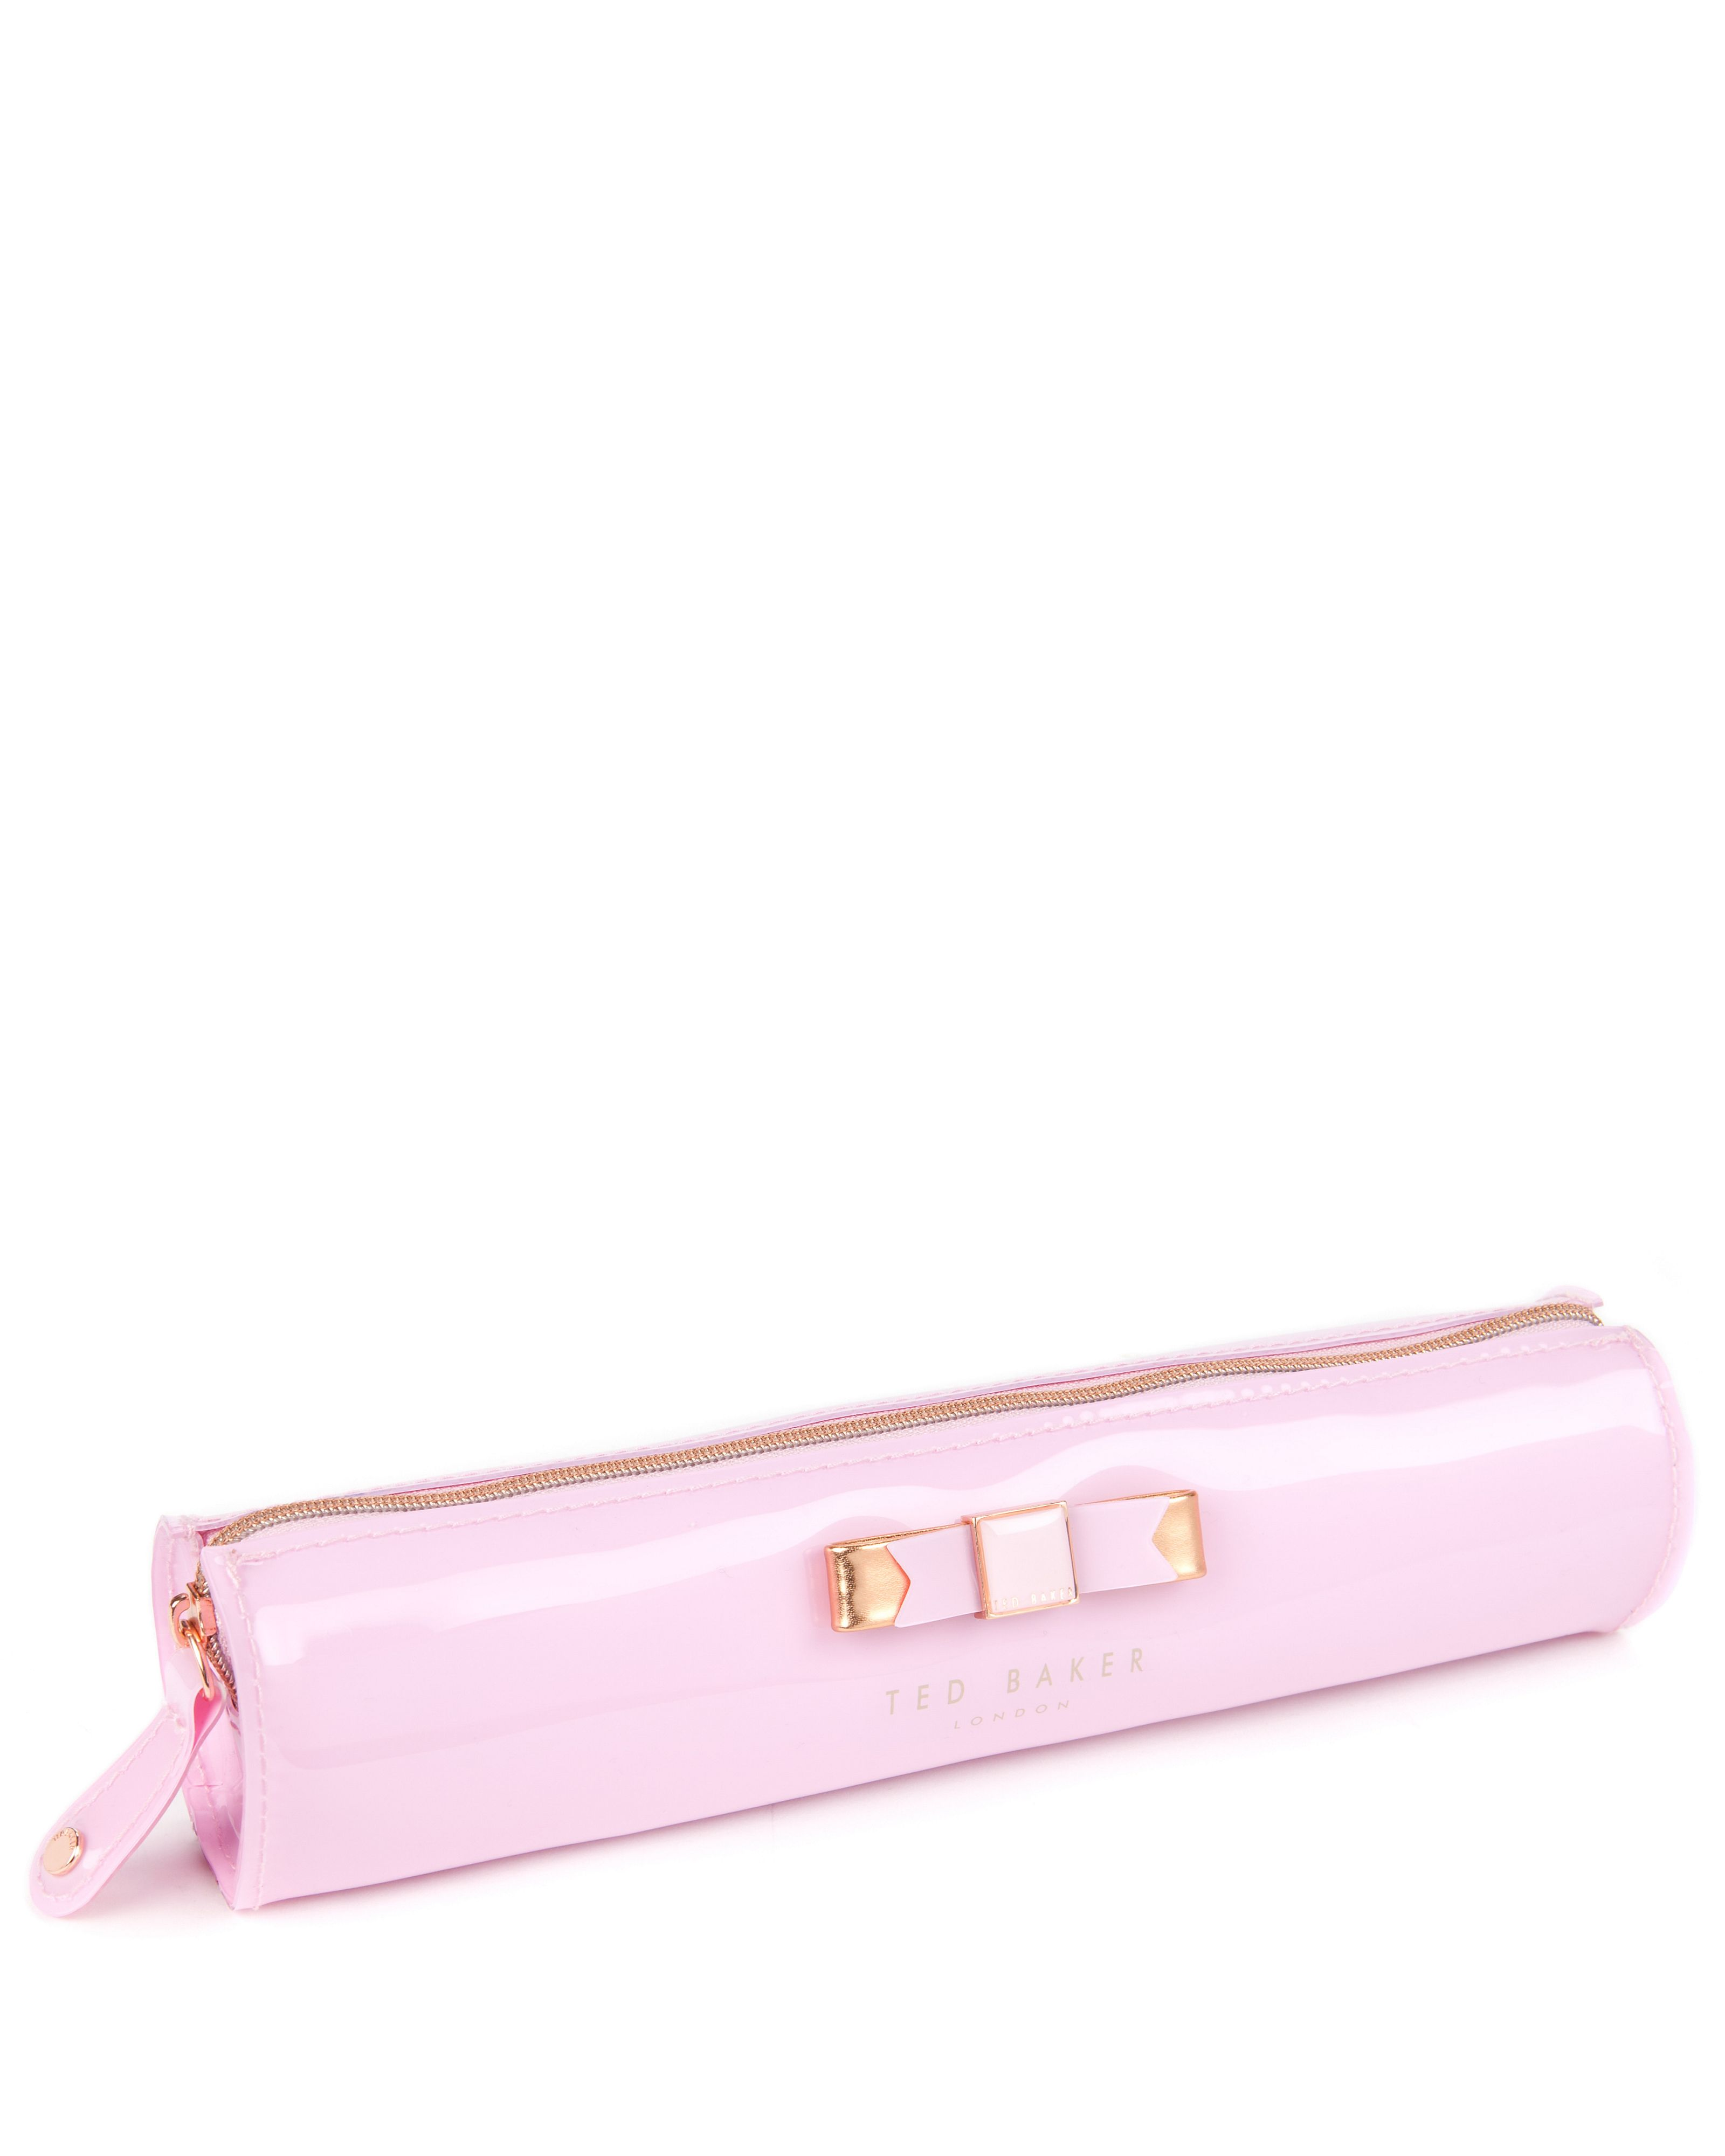 Magra bow pencil case